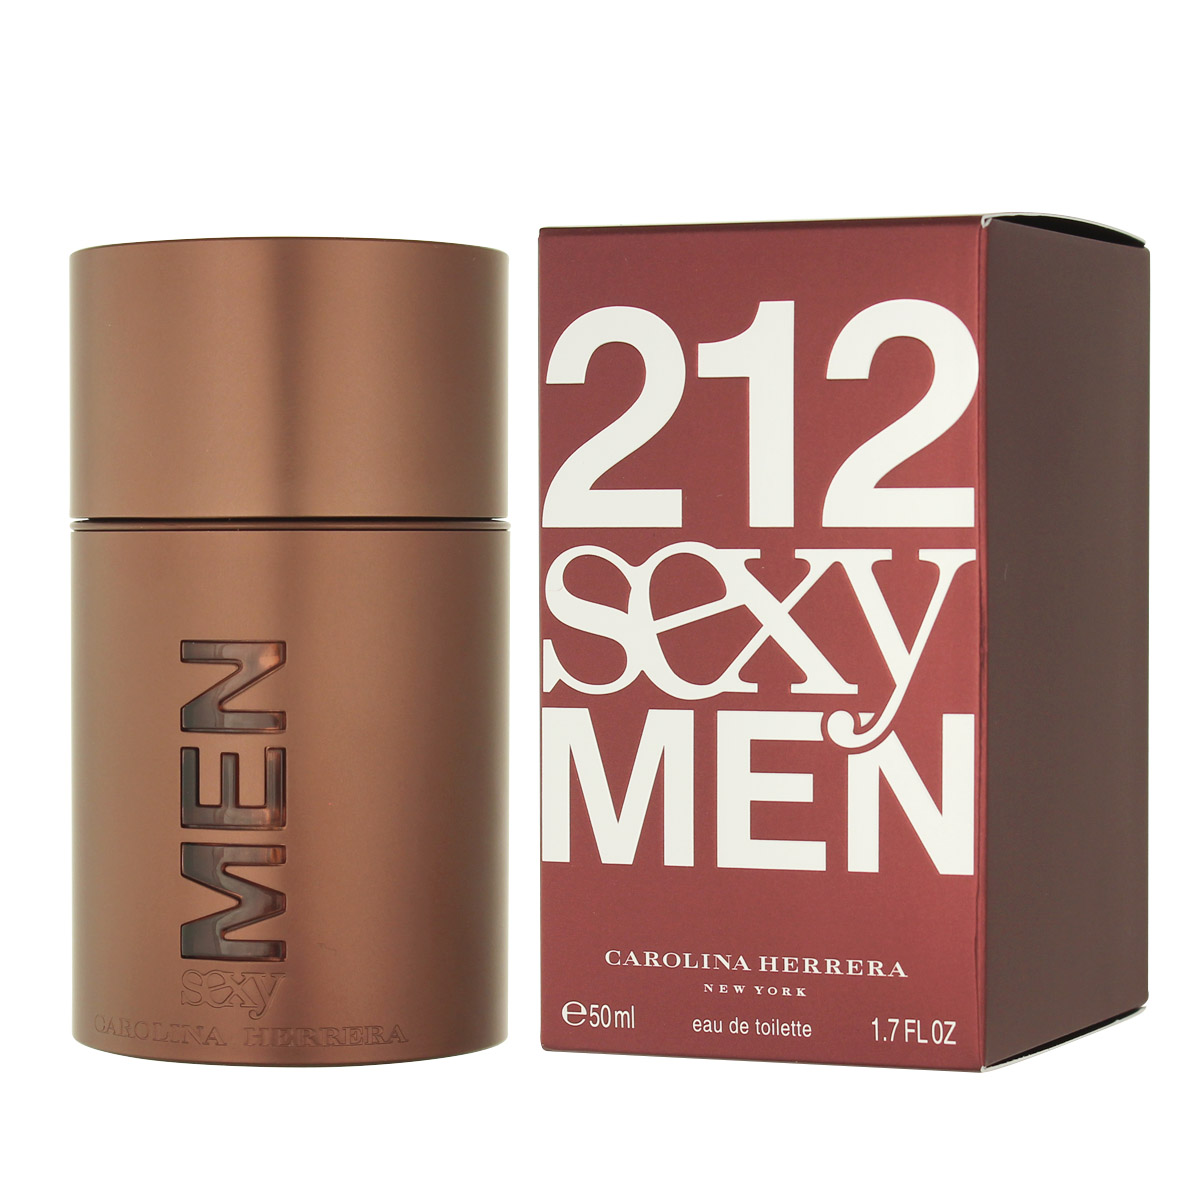 Carolina Herrera 212 Sexy Men EDT 50 ml M